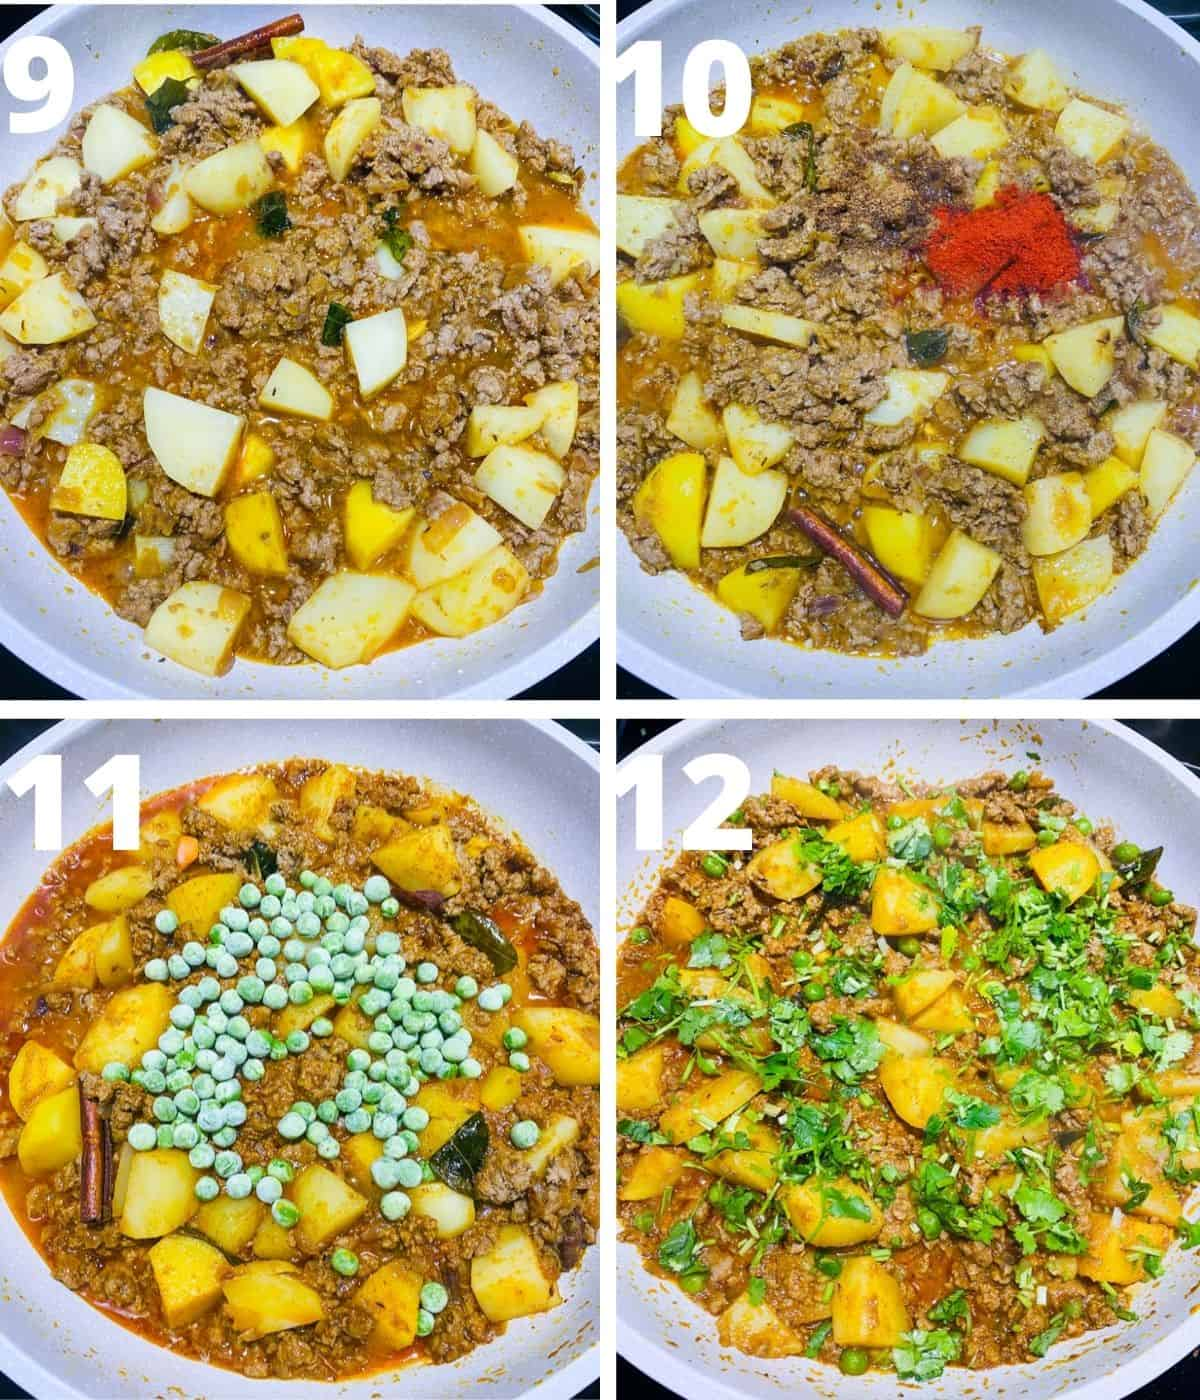 Step by step image collage of Aloo Kheema Matar. This collage covers until the end, i.e.. garnishing with cilantro